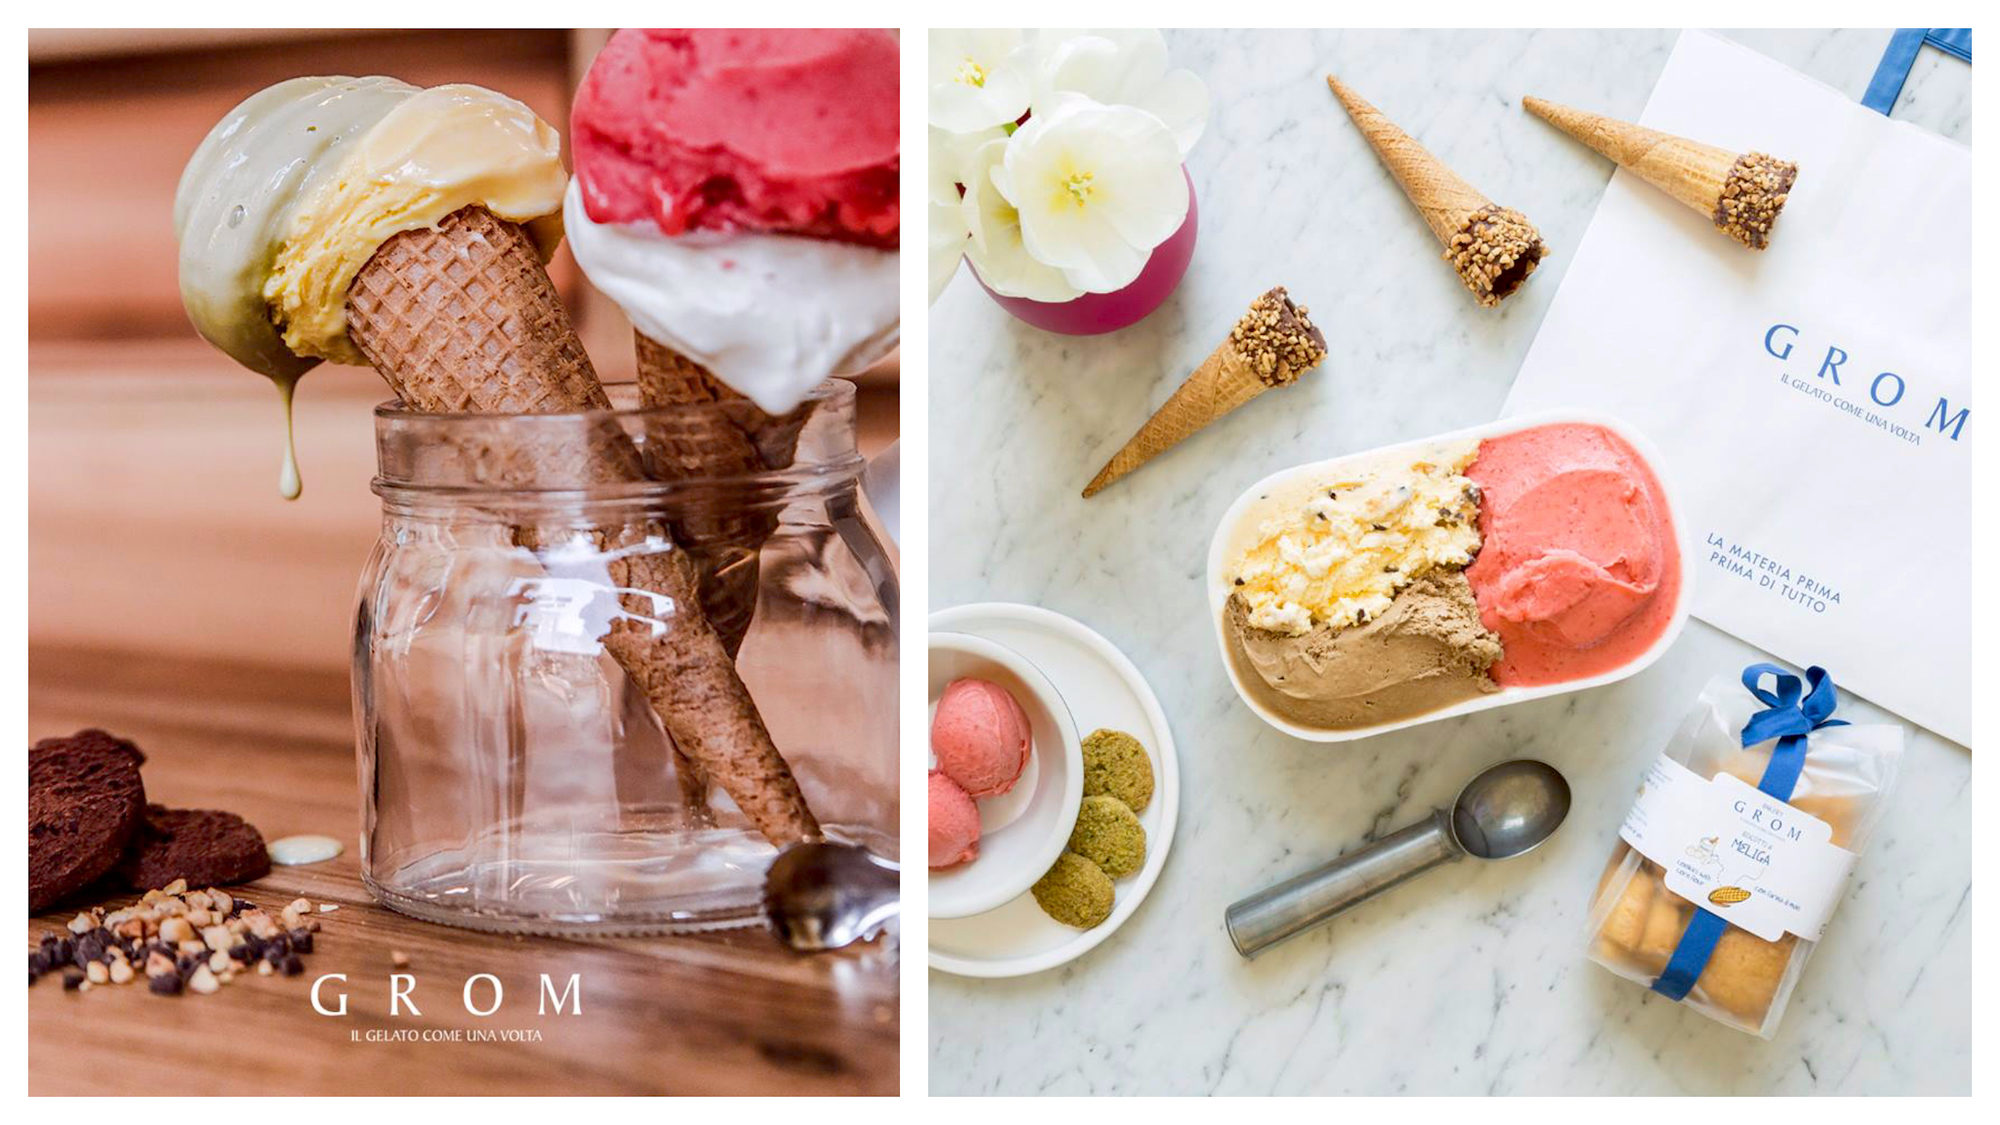 Colorful gluten-free ice cream in Paris from GROM.